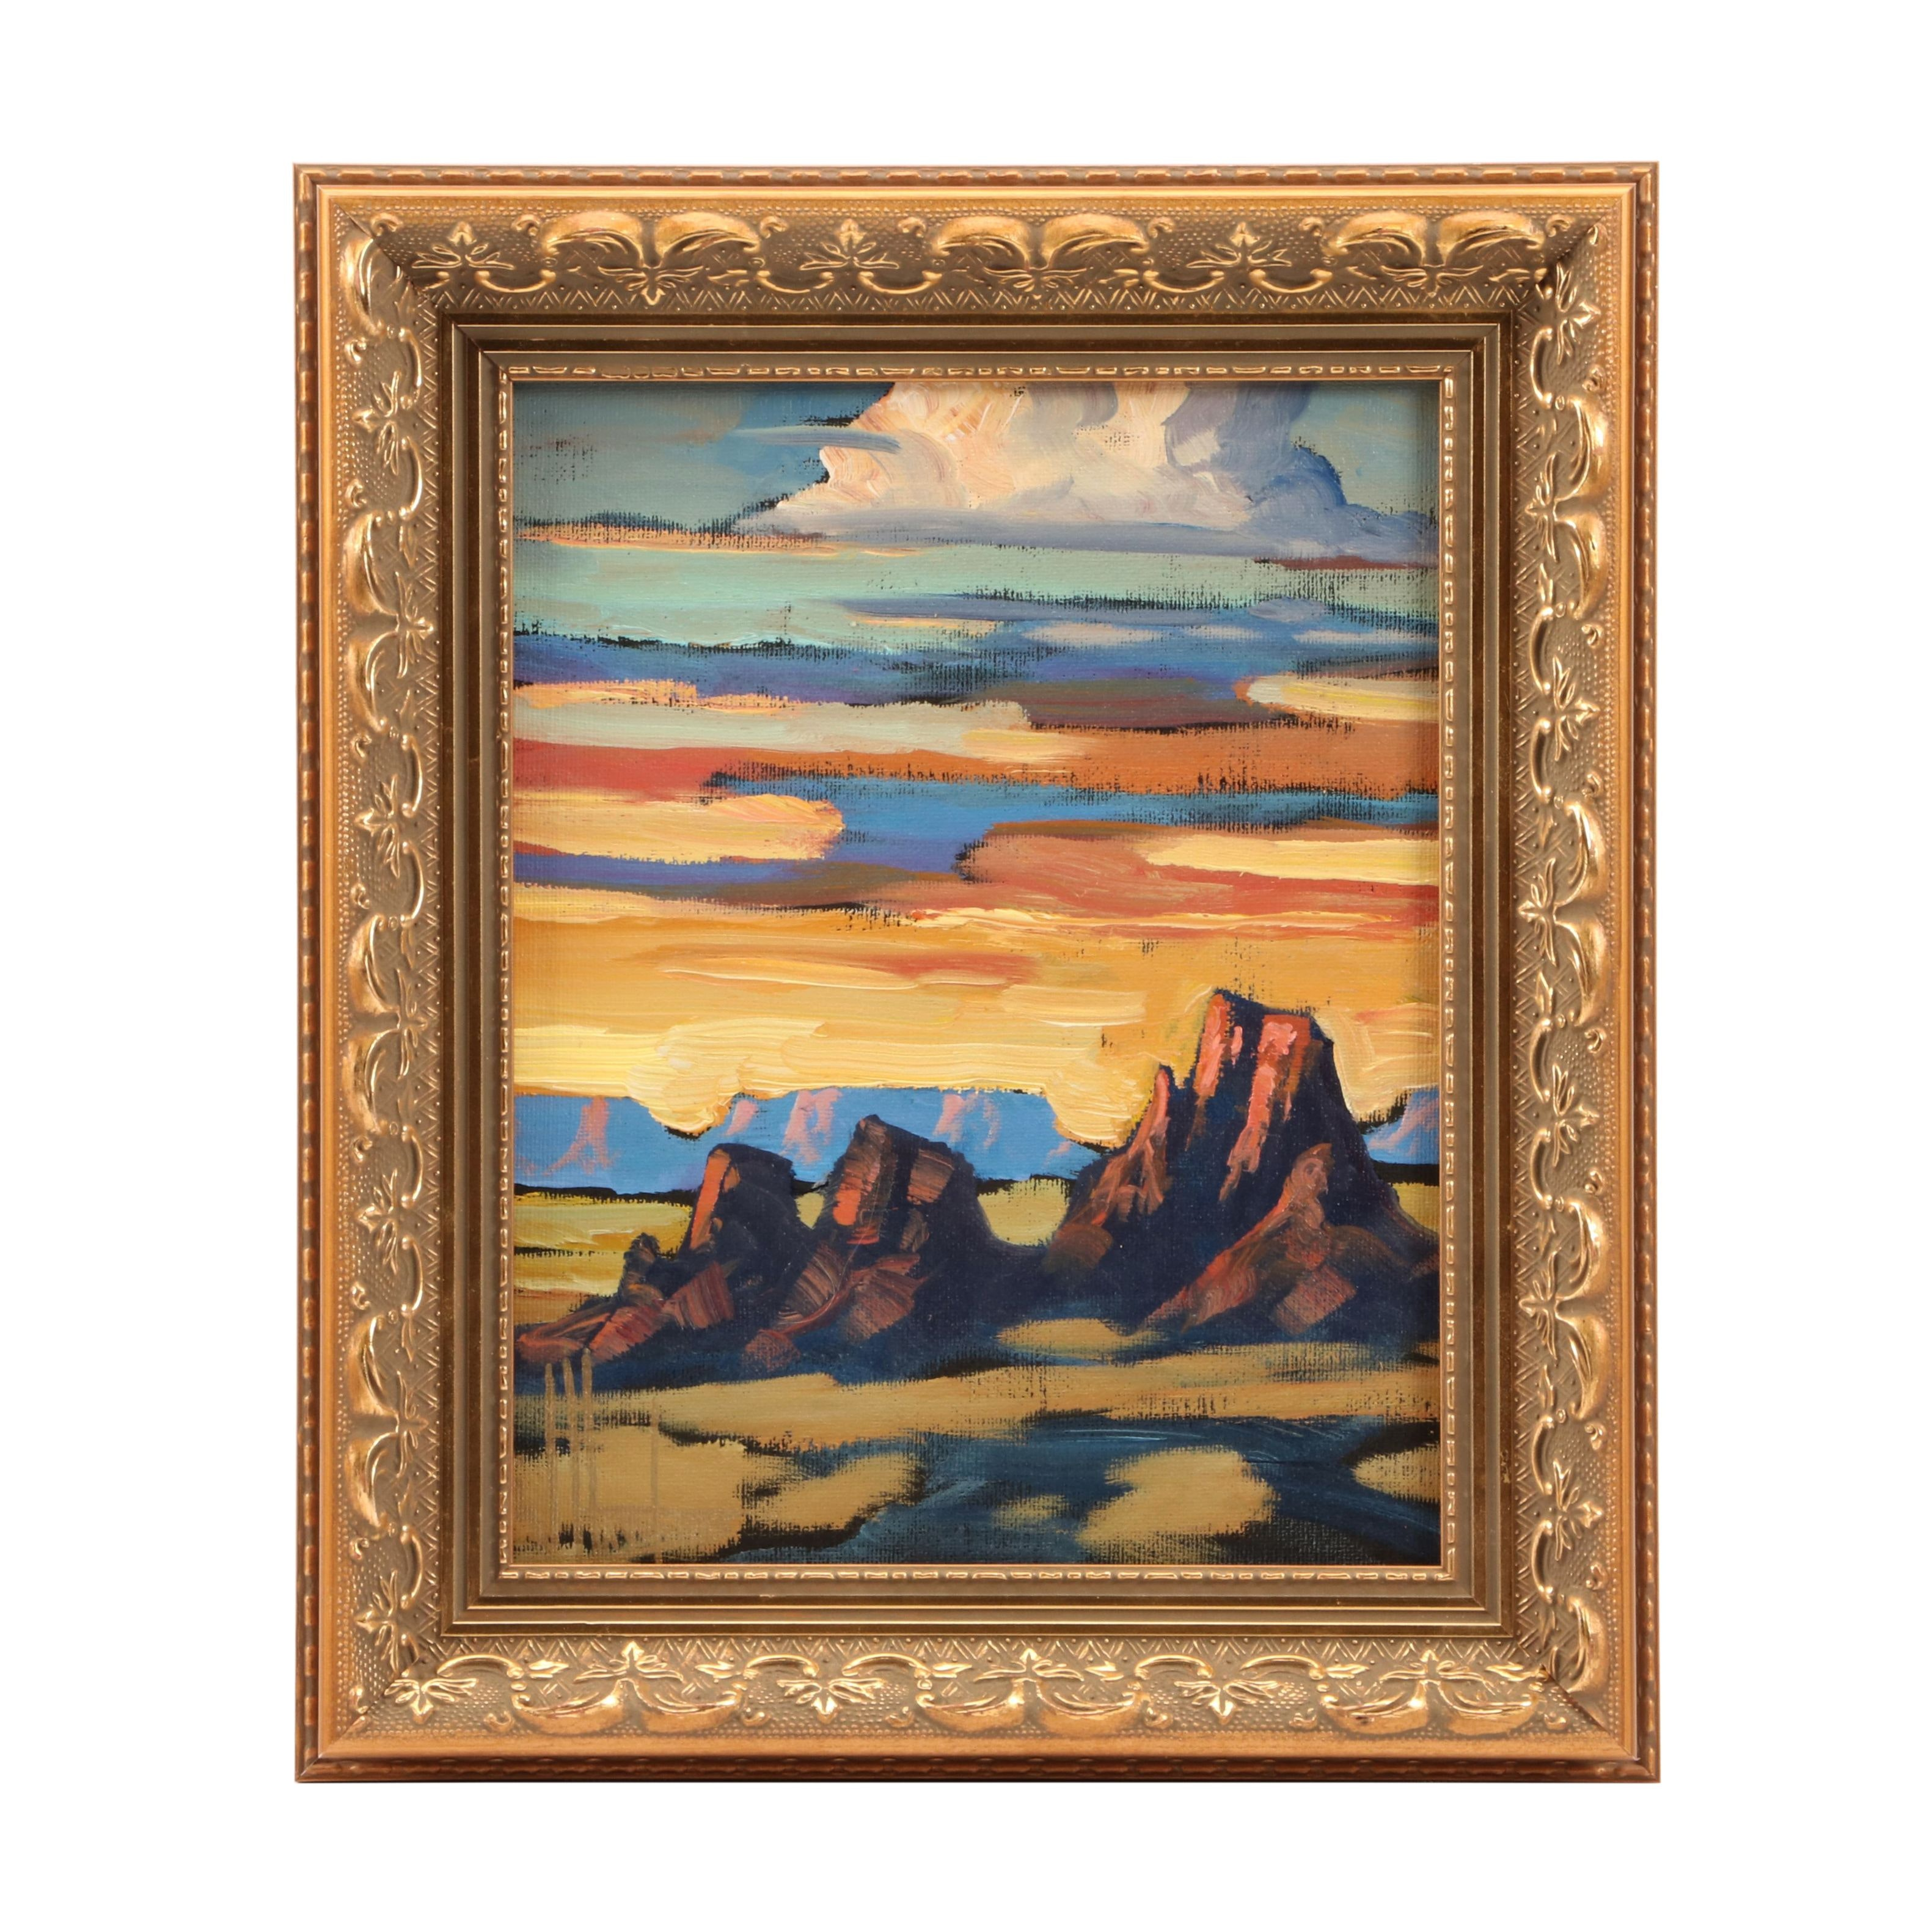 William Hawkins Oil Painting of Western Landscape